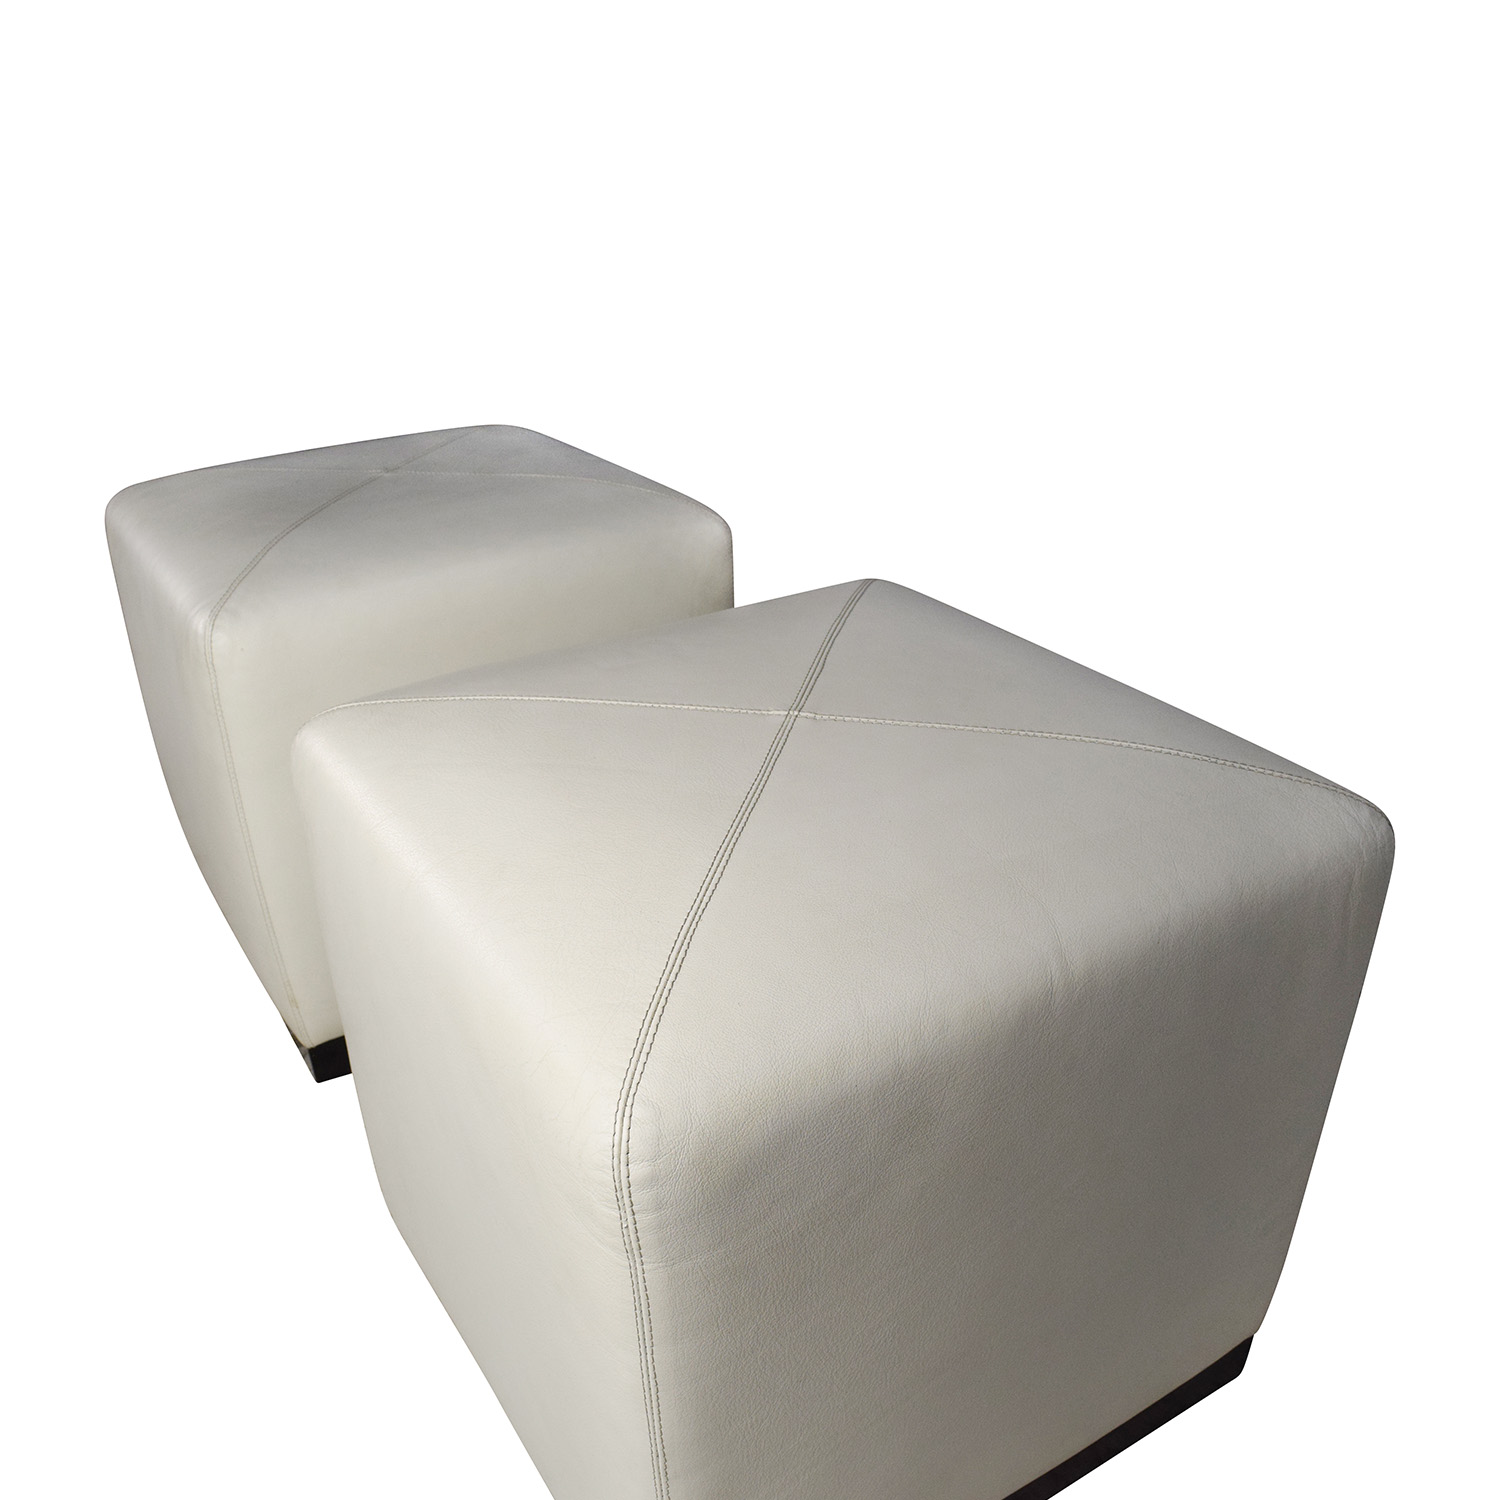 off  pair of white leather ottoman cubes  storage -  pair of white leather ottoman cubes  ottomans